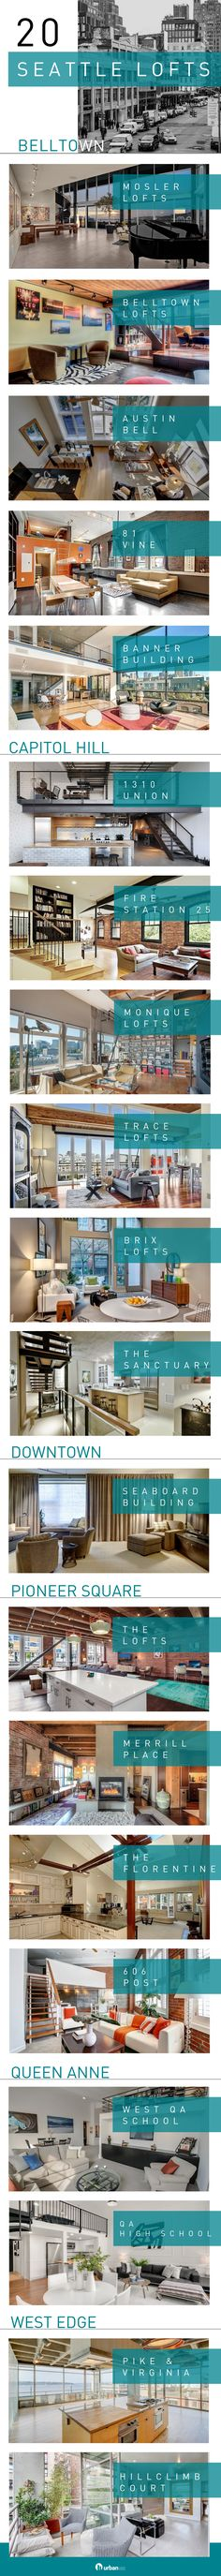 Looking for a Seattle Loft? We put together a free guide to show you 20 Seattle Lofts we think you should consider. This list was designed for you!